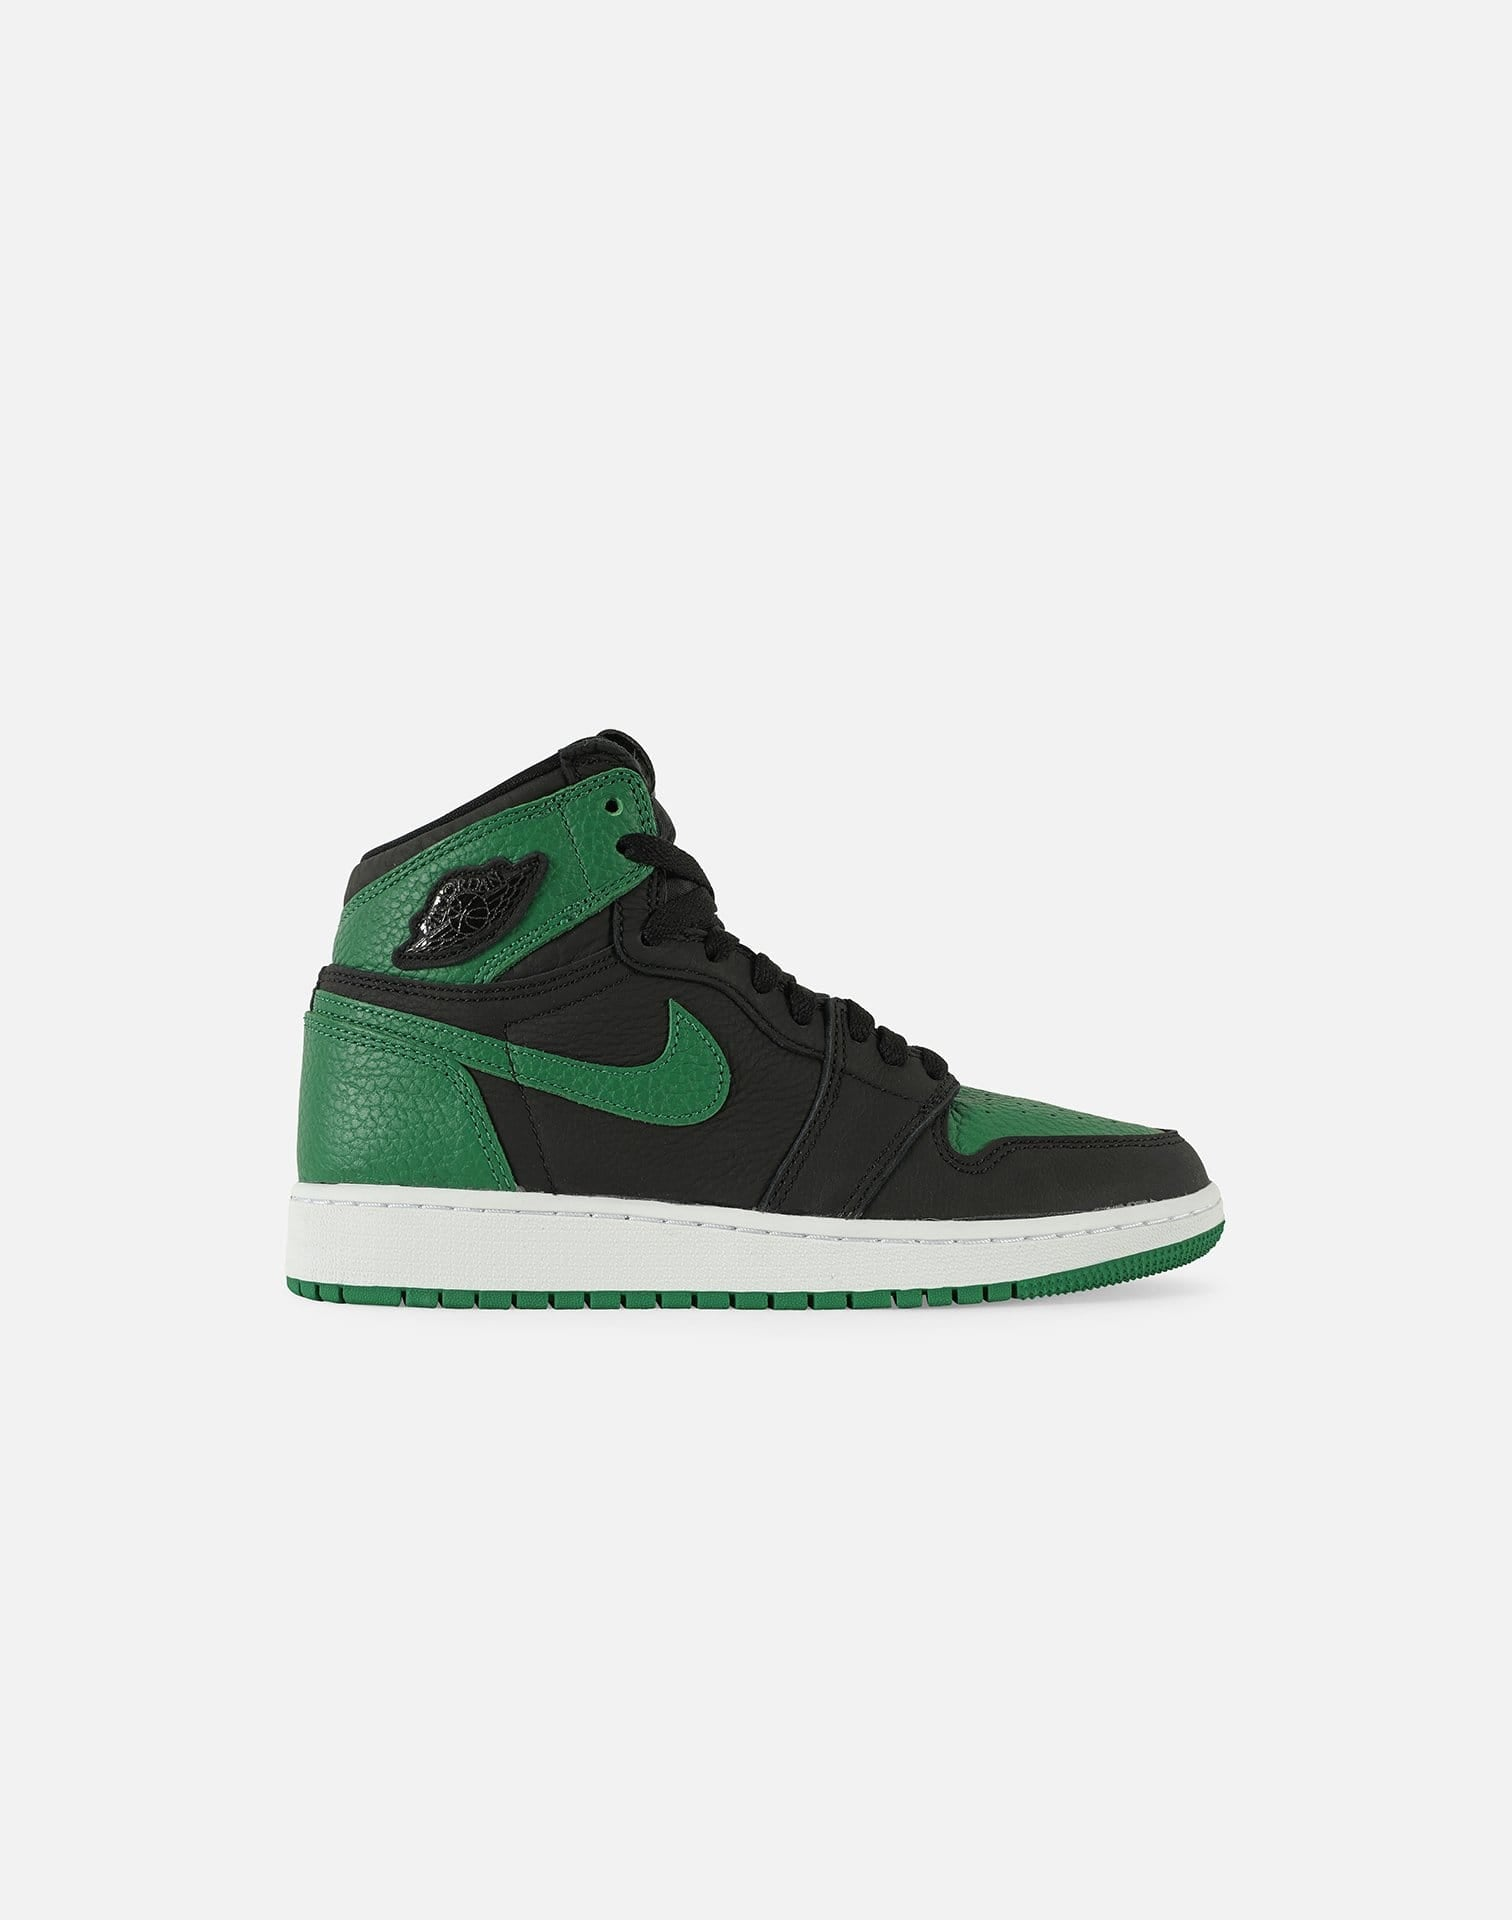 Jordan AIR JORDAN RETRO 1 HIGH OG 'PINE GREEN' GRADE-SCHOOL